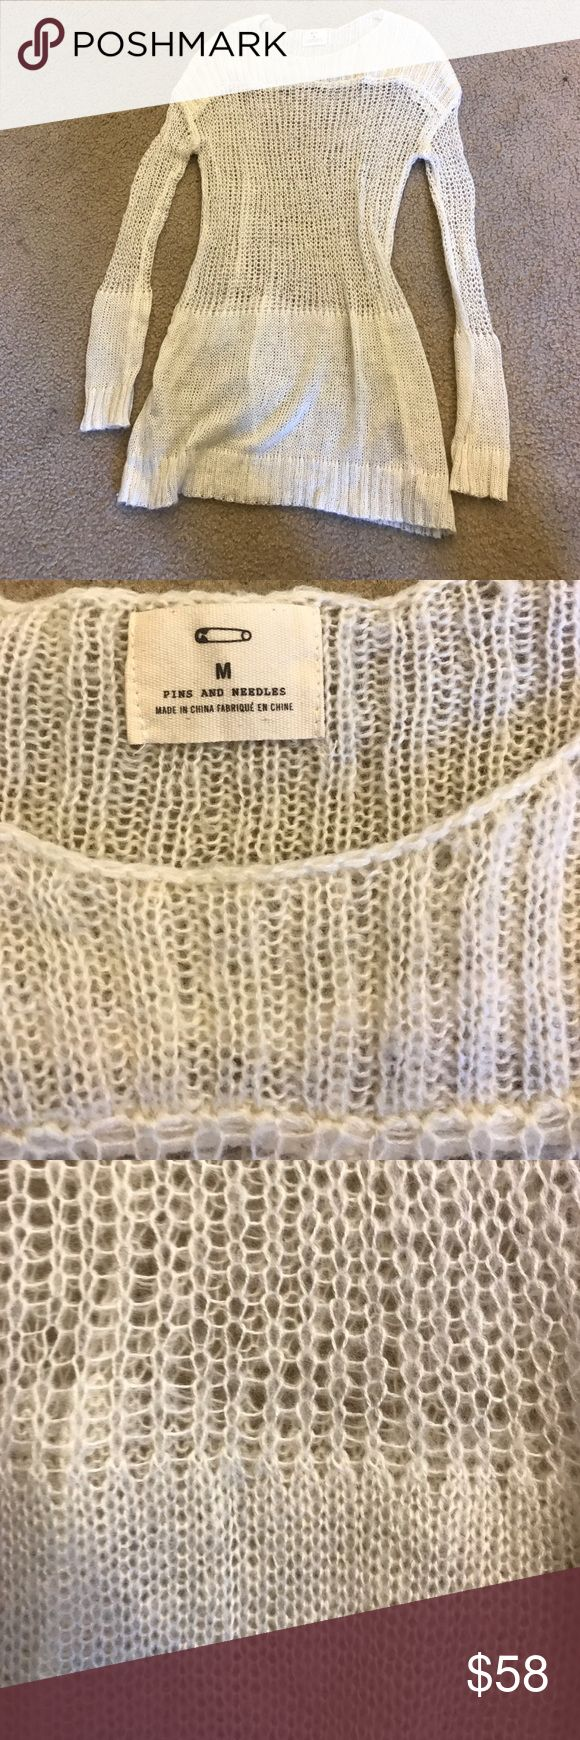 """Beautiful urban outfitters loose knit sweater Great ultra light summer sweater. Hardly worn, very soft and comfy. Pins and needles purchased from urban outfitters. I'm 5'11"""" and it covers my butt sometimes I wear it as a dress with a slip underneath Pins and Needles Sweaters Crew & Scoop Necks"""